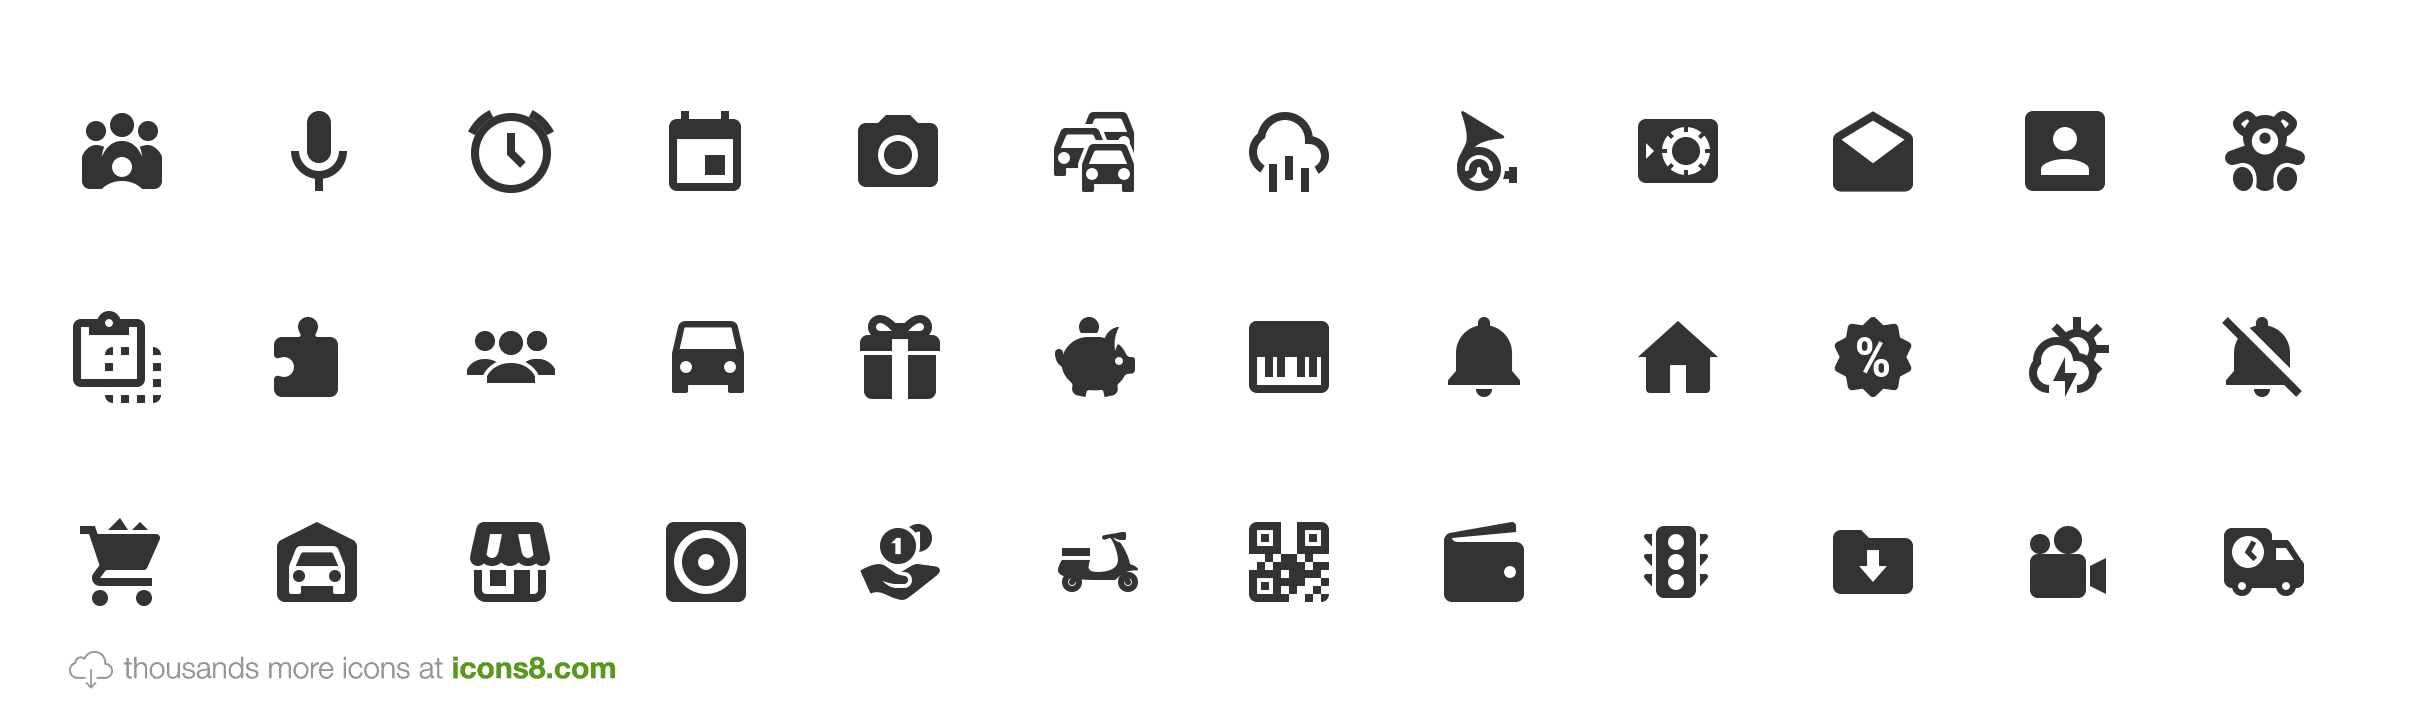 World S First Android L Icon Pack Icons8 Icon Download Free Icon Pack Free Icons Png